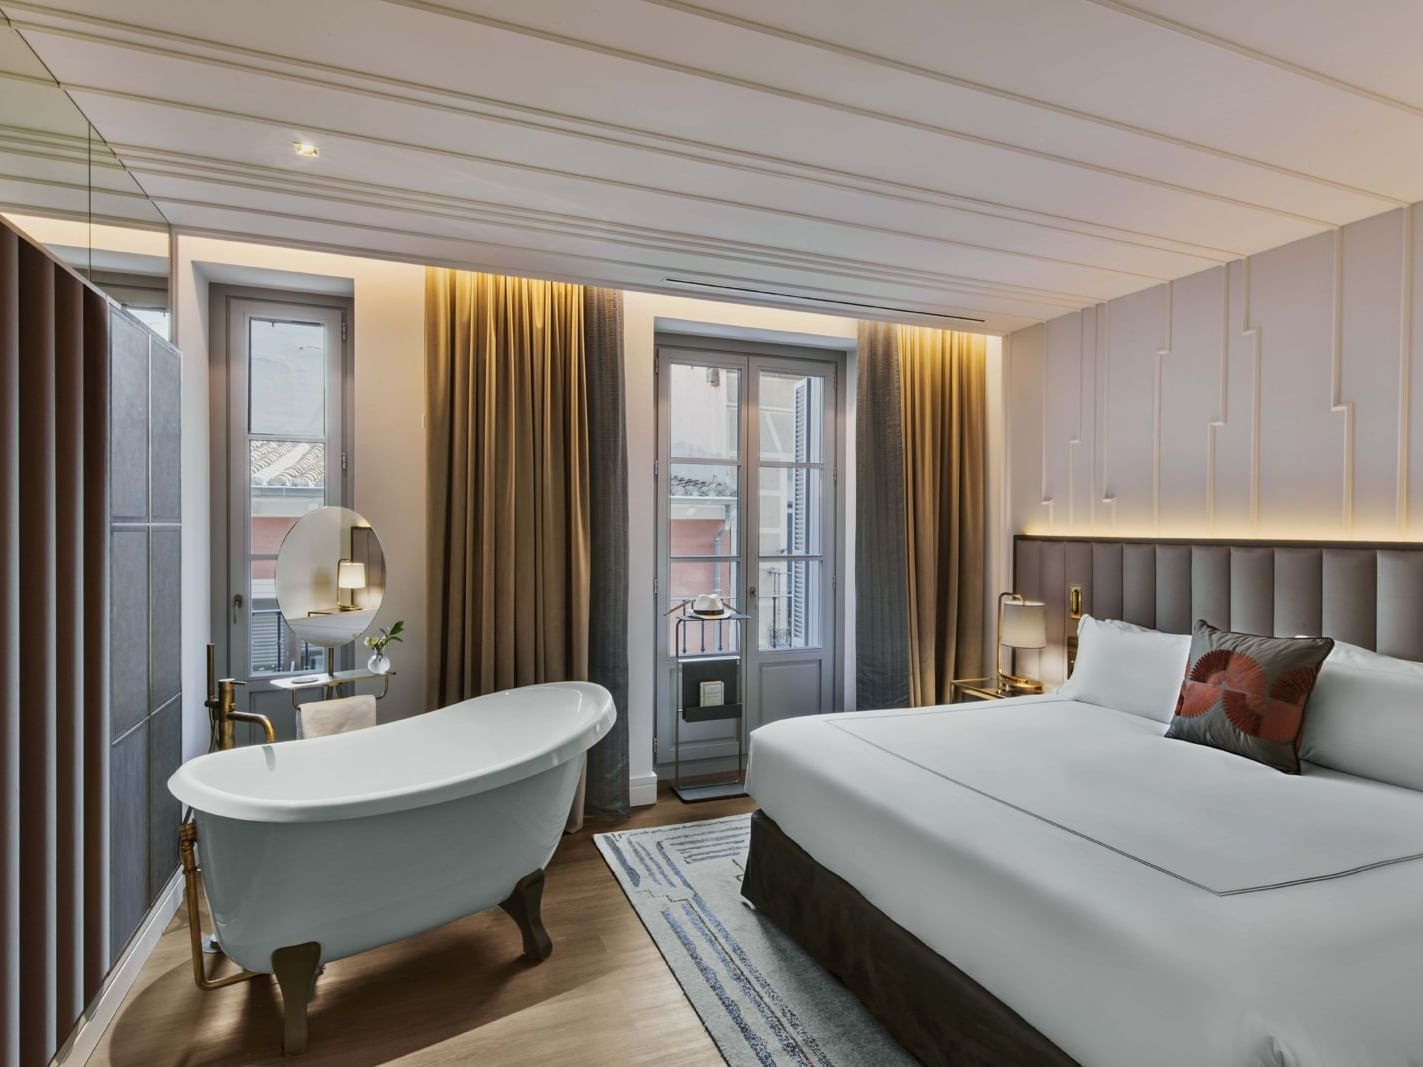 Accommodation at Gran Hotel Inglés in Madrid